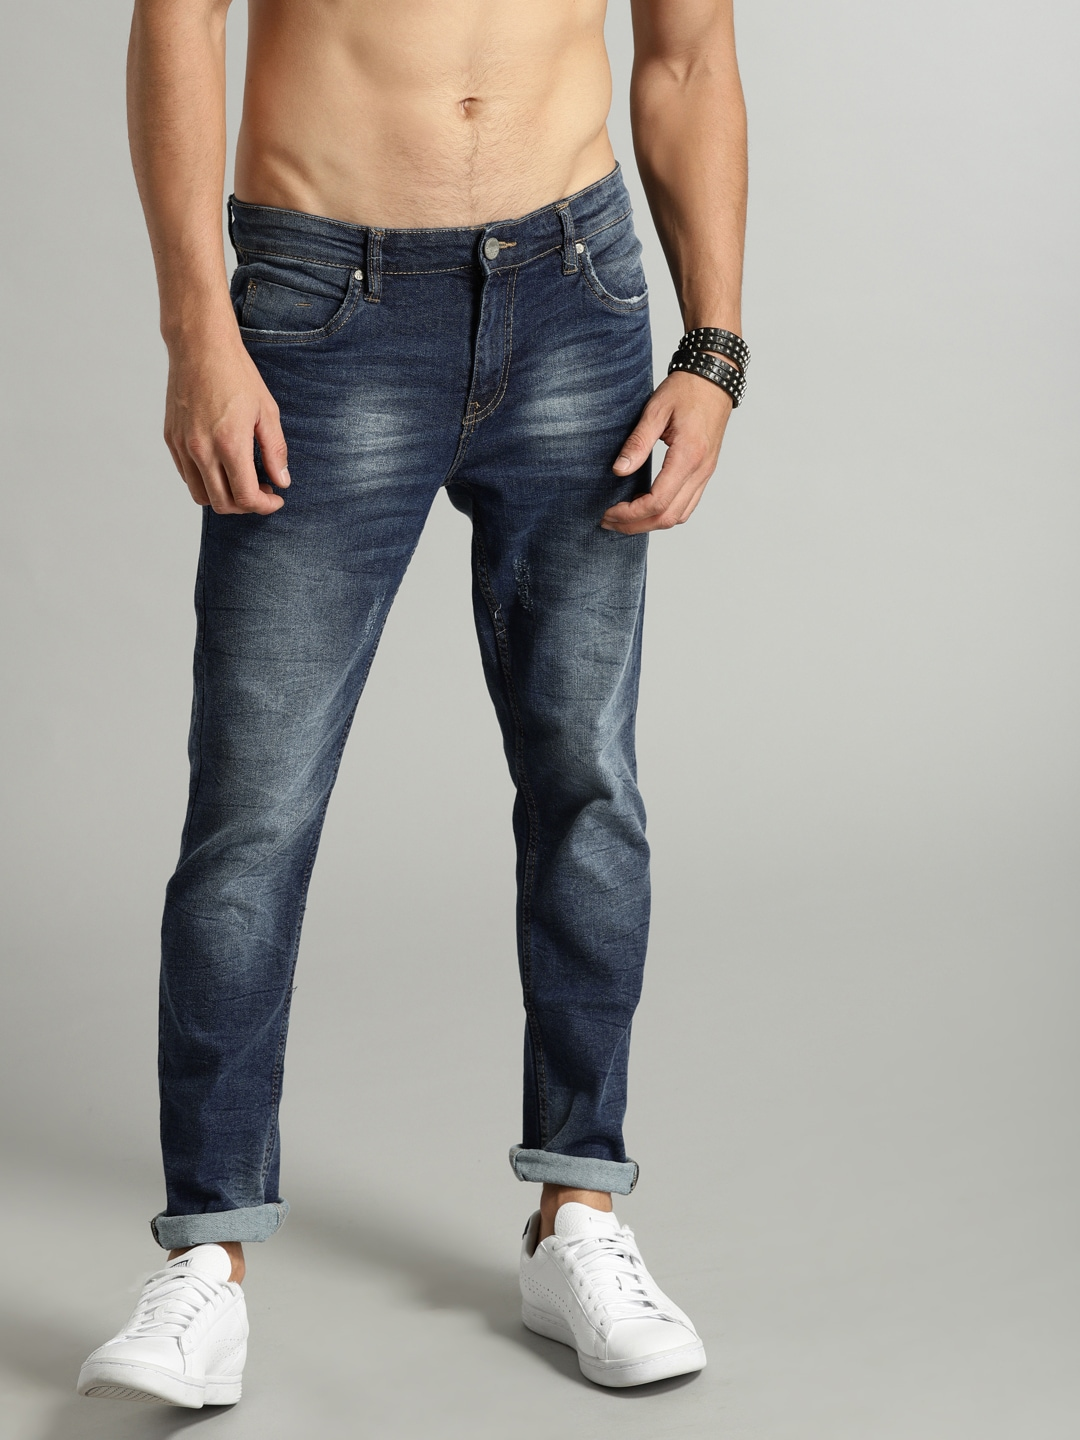 Buy Men's Jeans Starting at Rs.339